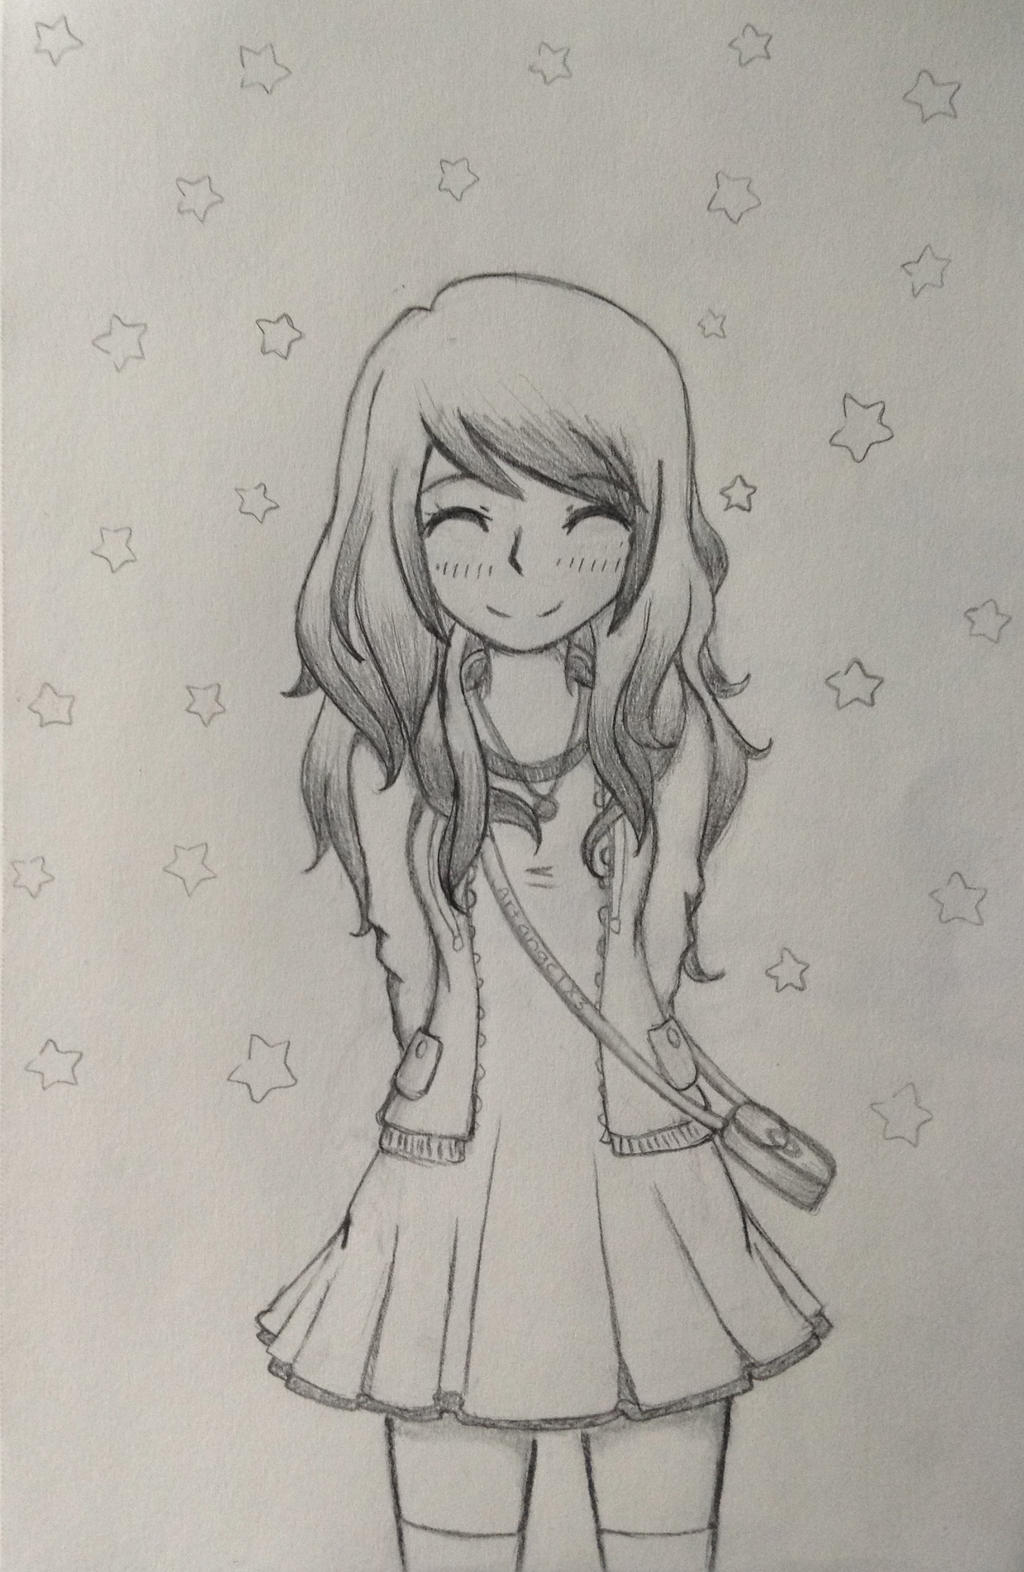 Happy Anime Girl By Artangelx3 On DeviantArt